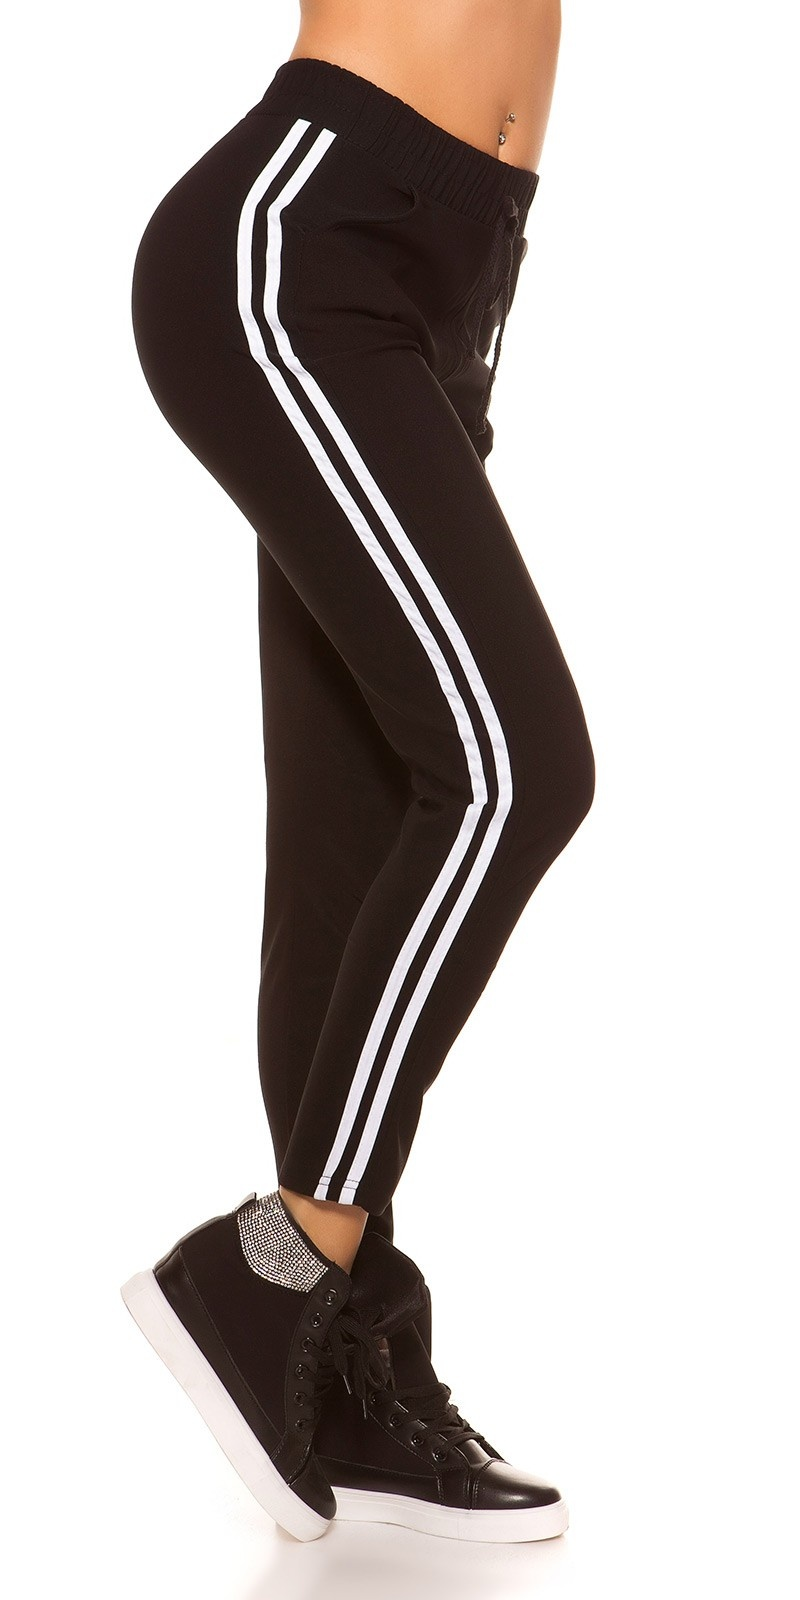 Trendy joggers with contrast stripes White